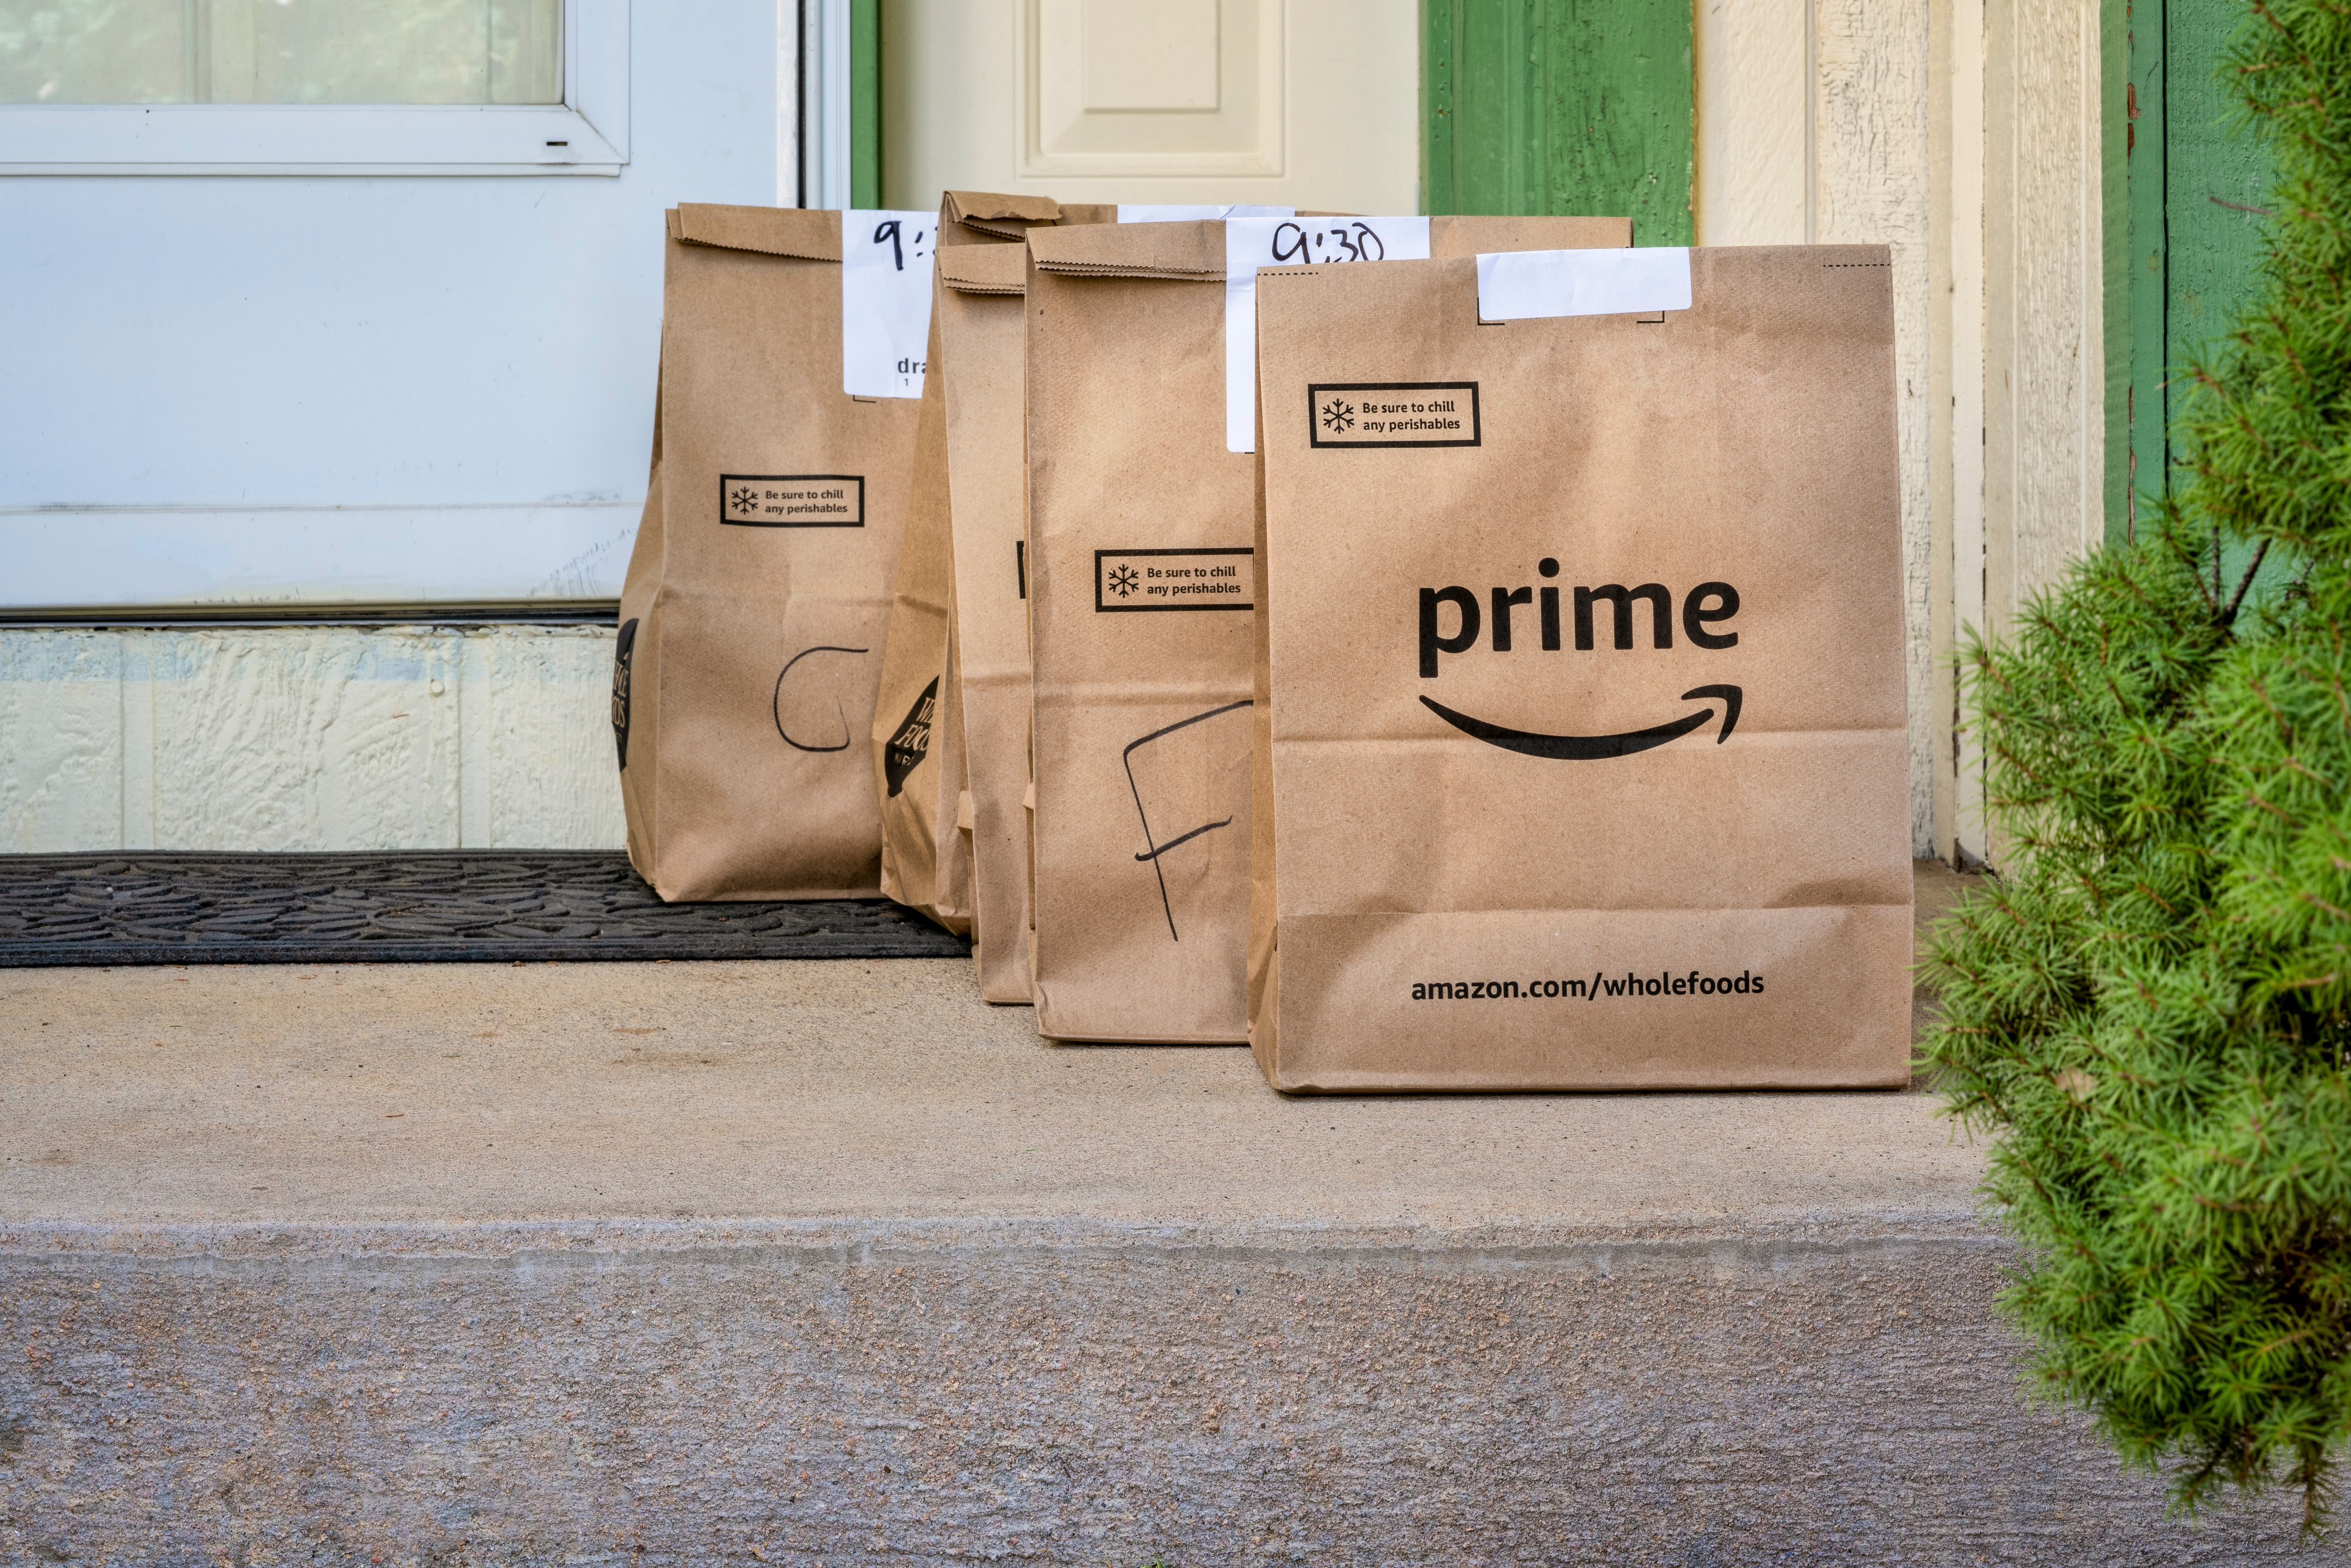 Multiple Amazon Prime delivery bags on a doorstep.